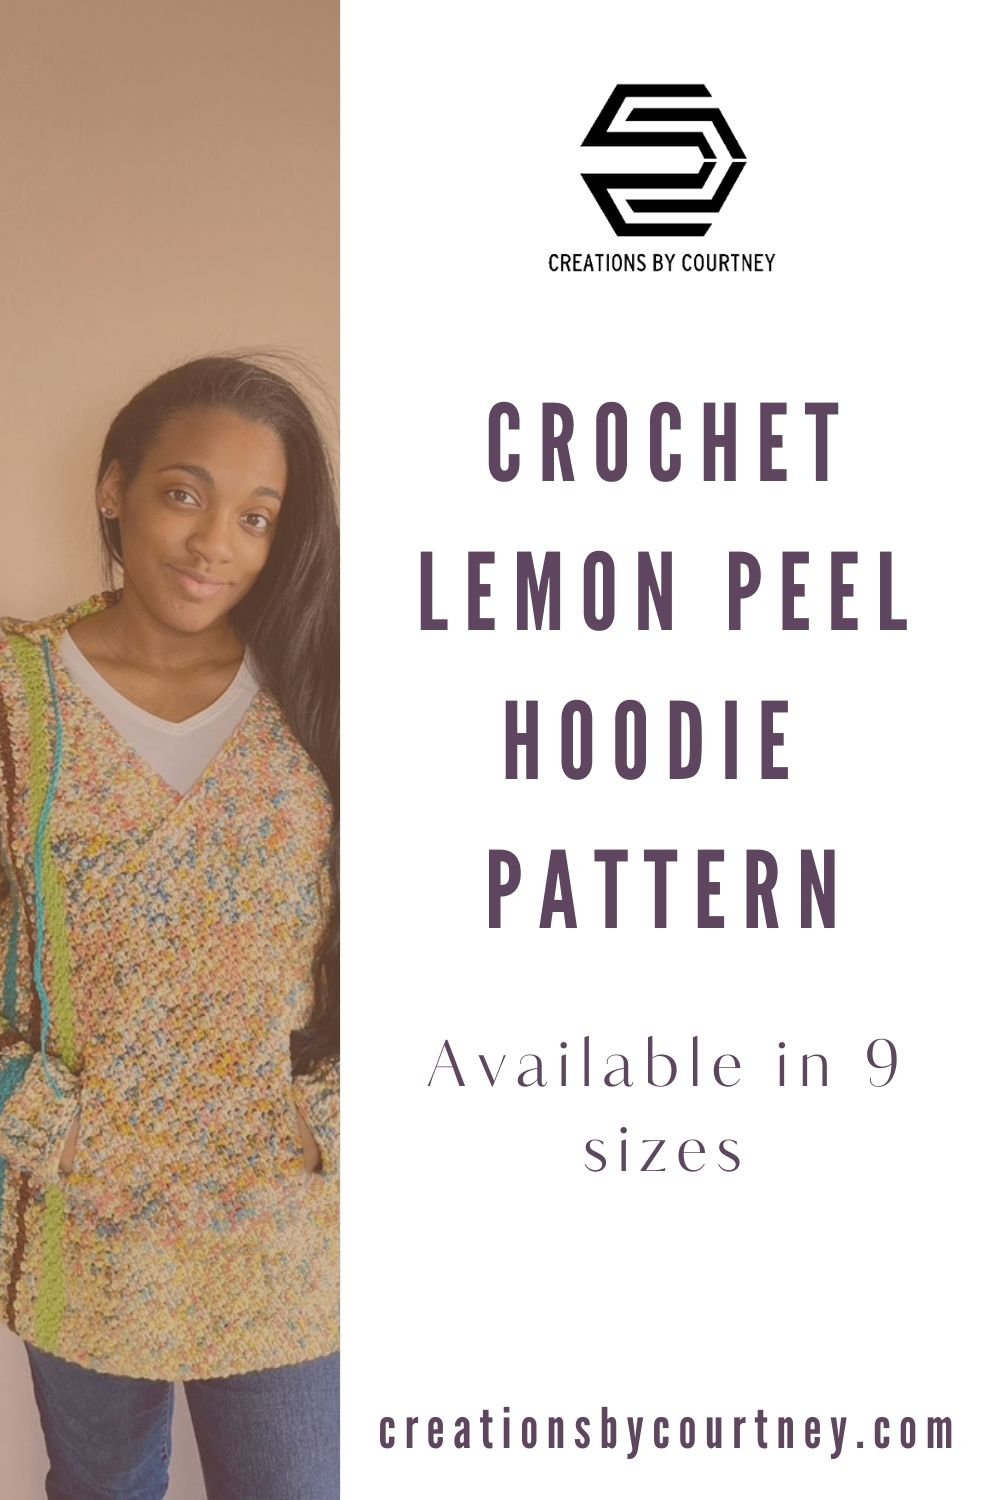 The LP Hoodie offers texture, comfort and style in this size-inclusive crochet pattern. With vertical stripes, it compliments all sizes. The hood is shaped so it stays in place and has ties. The v-neck allows for easy layering, but is not too low that you have to wear a shirt underneath. The hidden pocket is great for your hands and holding a phone. #creationsbycourtney #crochetsweater